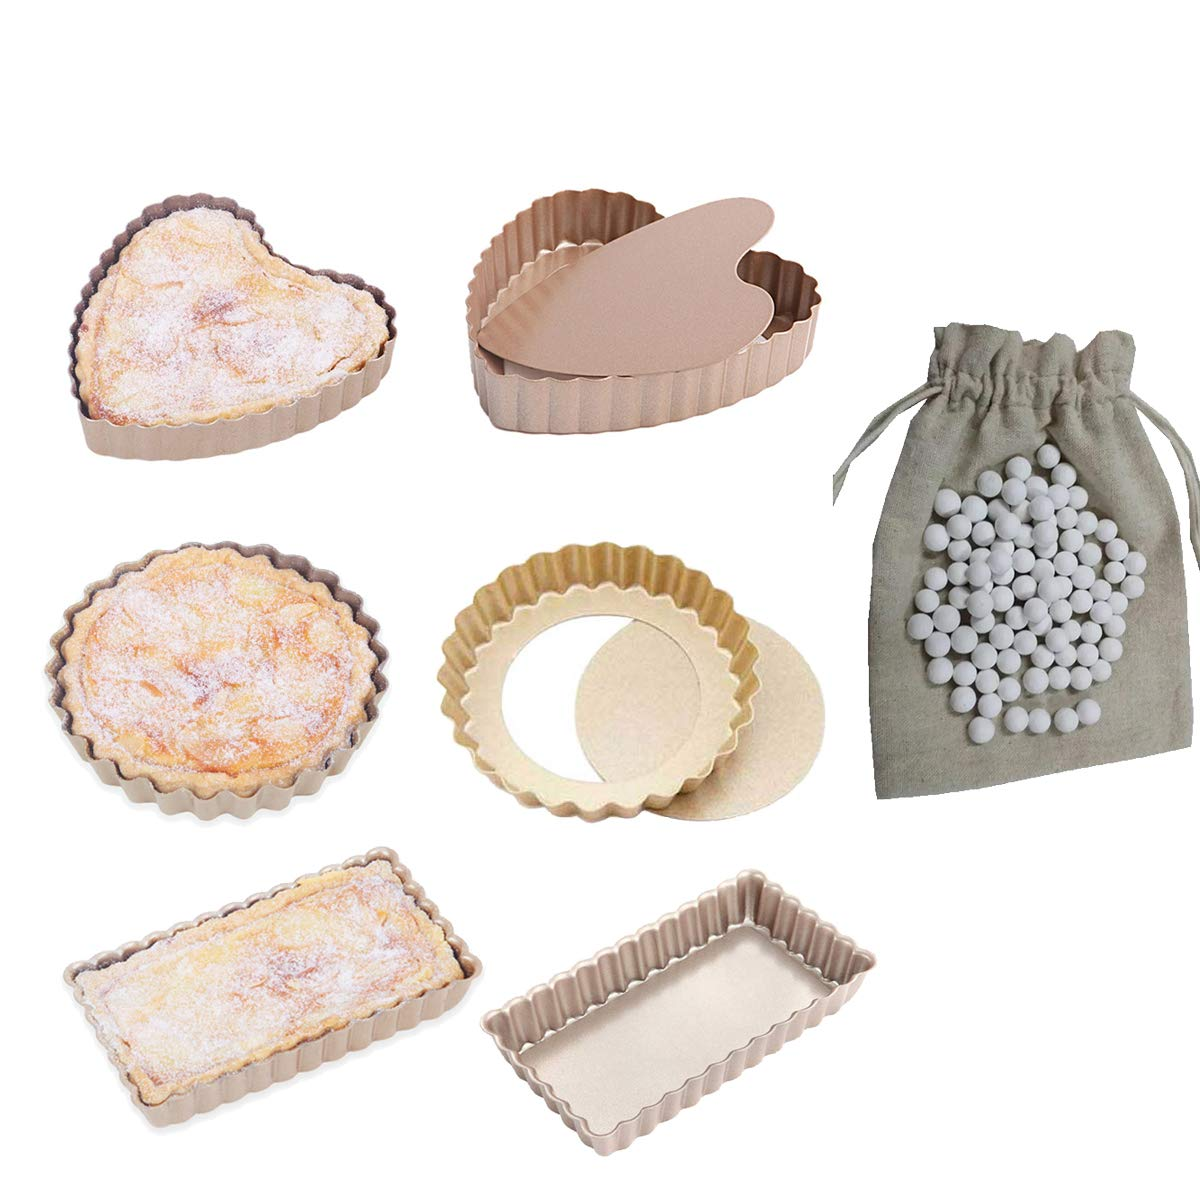 CANDeal Pie Mould Set, 6 pcs Mini Pie Tart Quiche Baking Pan and 1lb Ceramic Baking Beans Pie Weight, Round/Rectangular/Heart varied shape Loose Bottom Mould